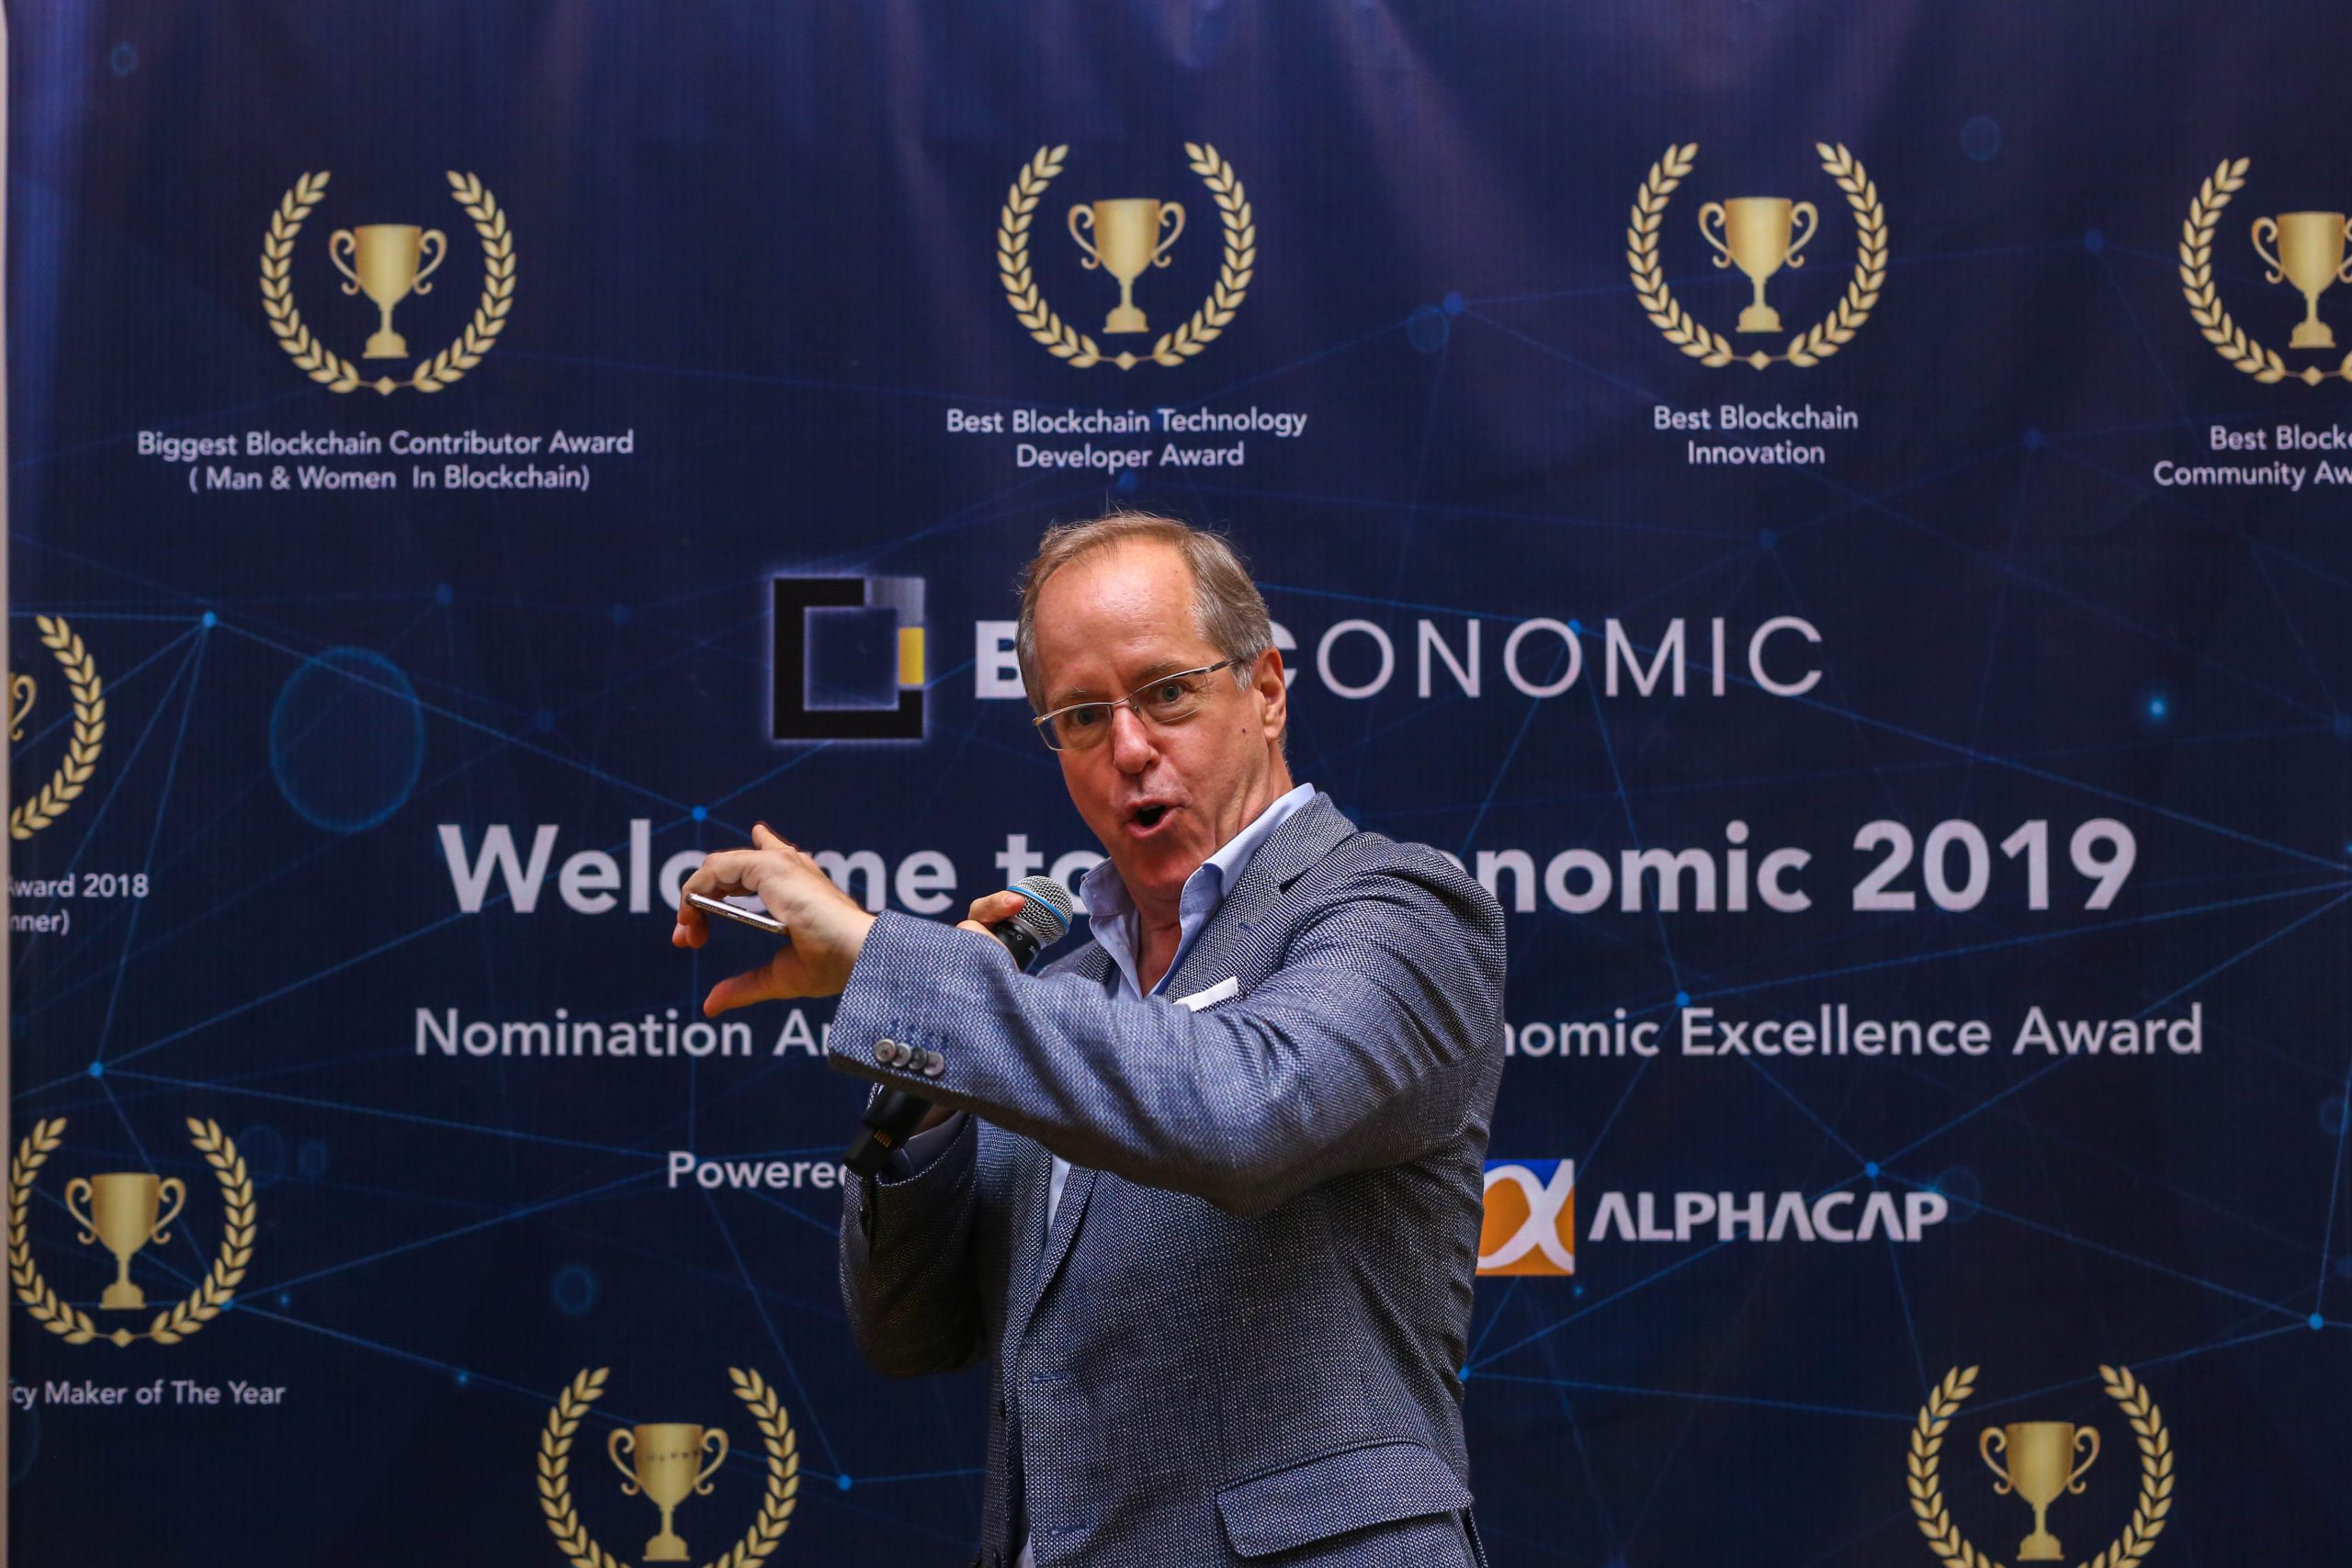 Bloconomic Expo Malaysia April 2019